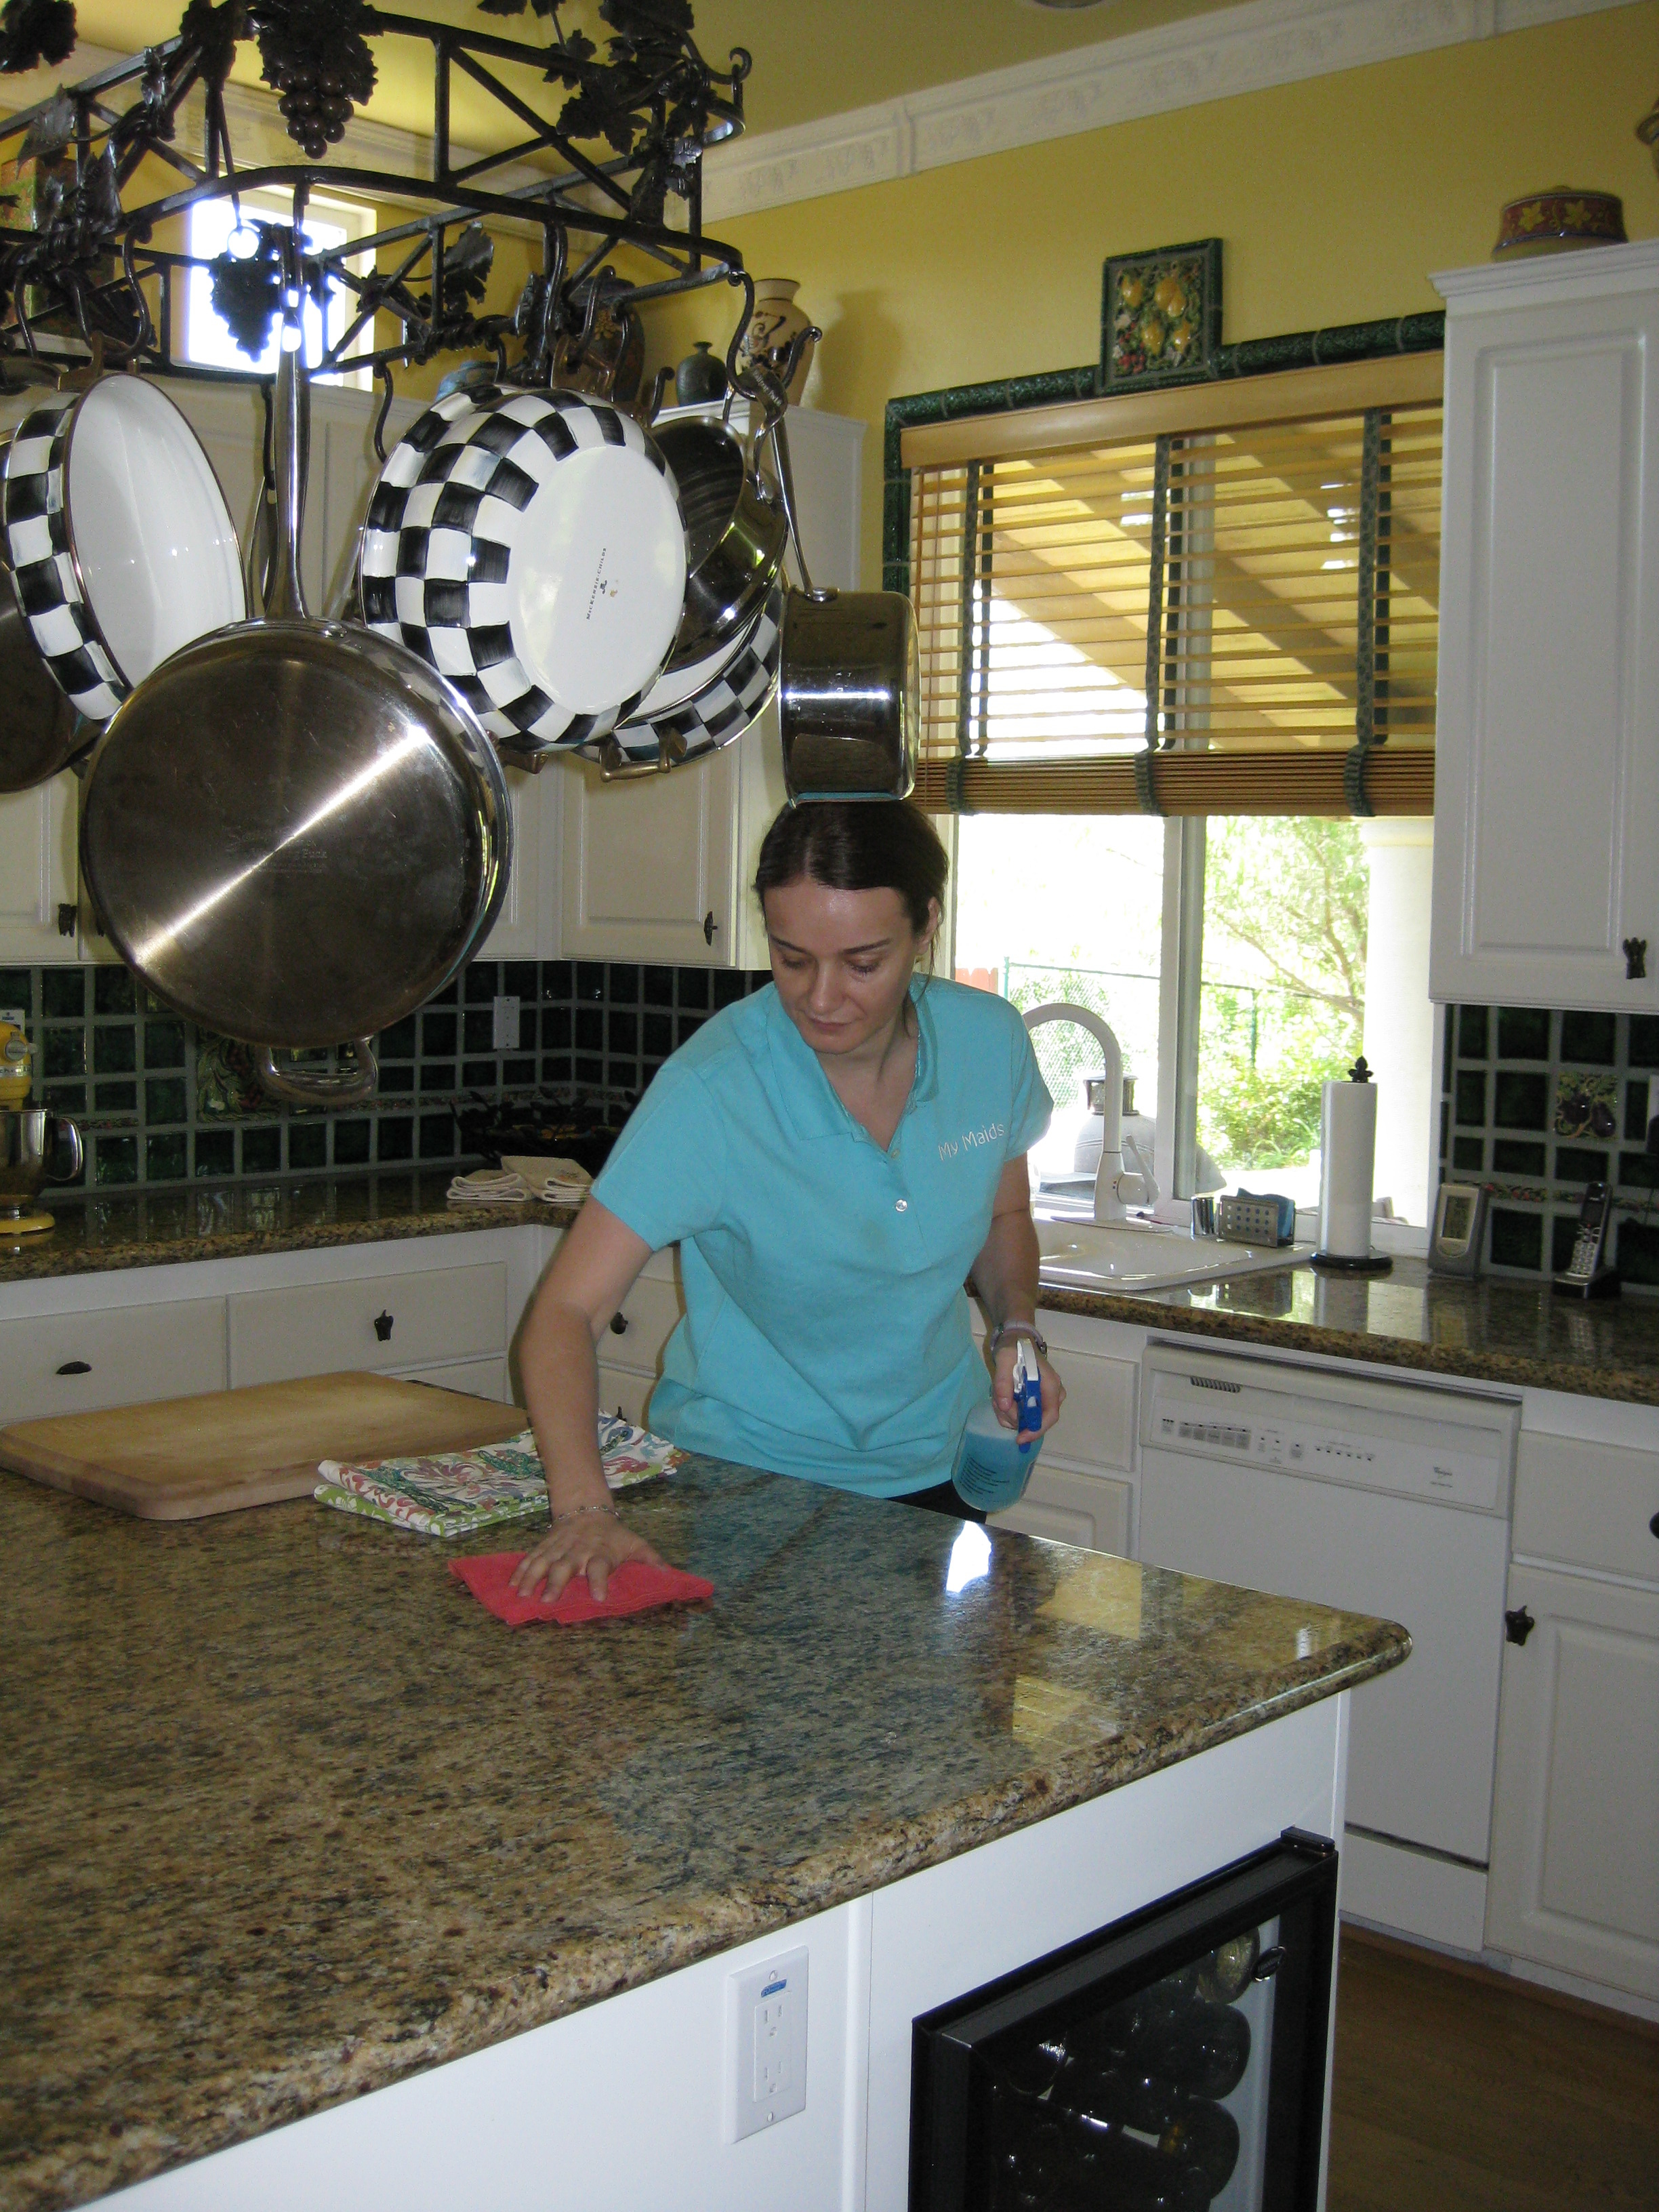 kitchen cleaning services butcher block countertops have a maids toluca lake california ca localdatabase